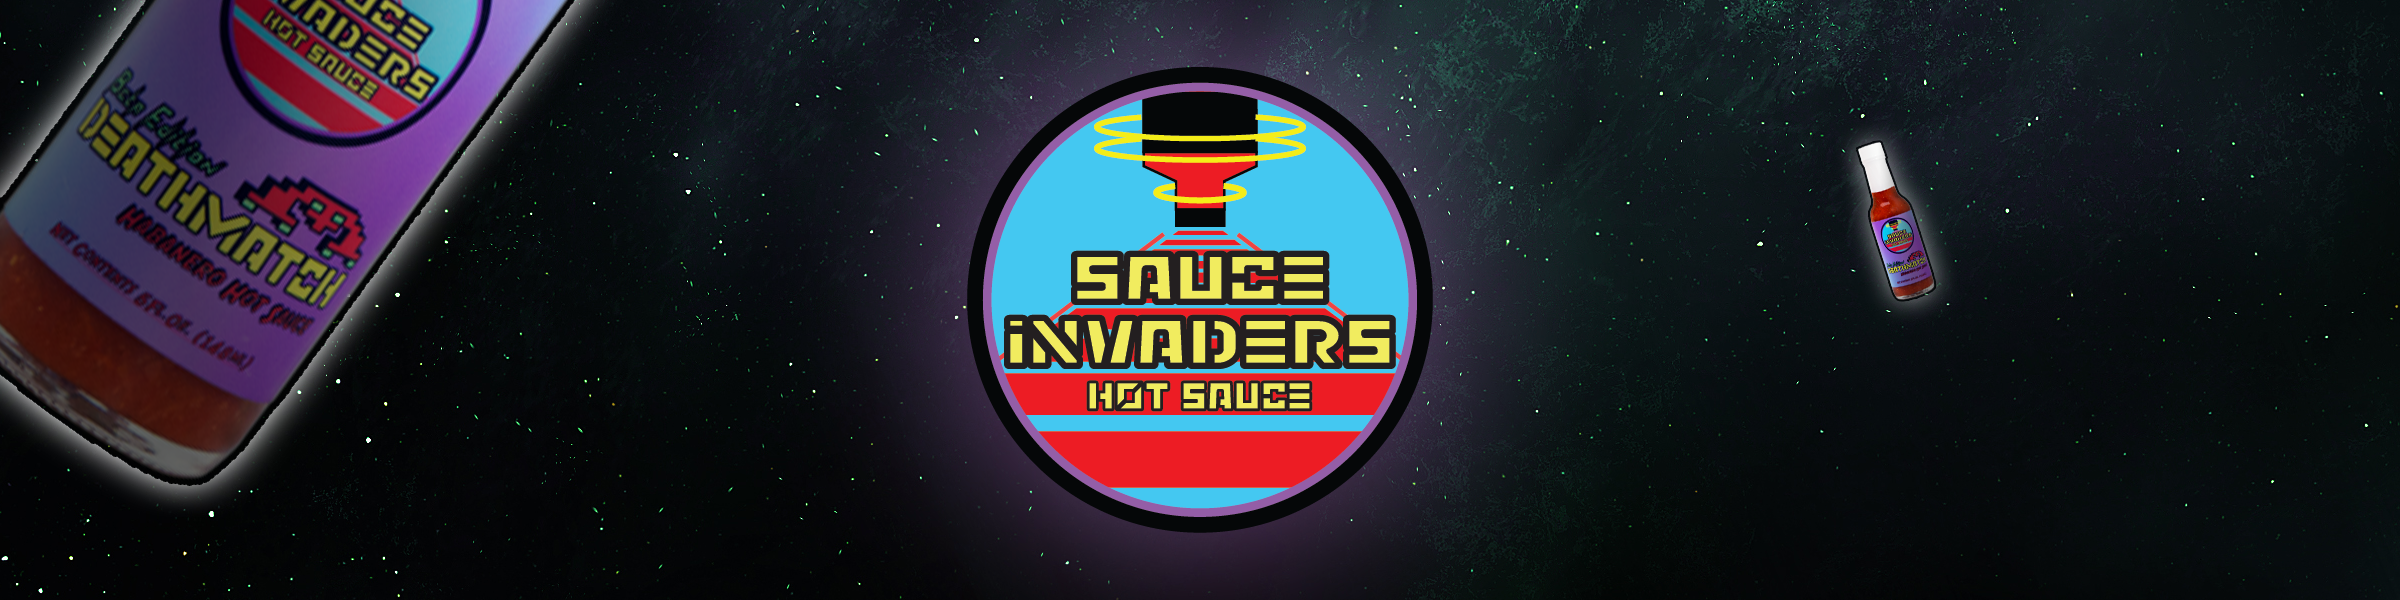 Sauce Invaders